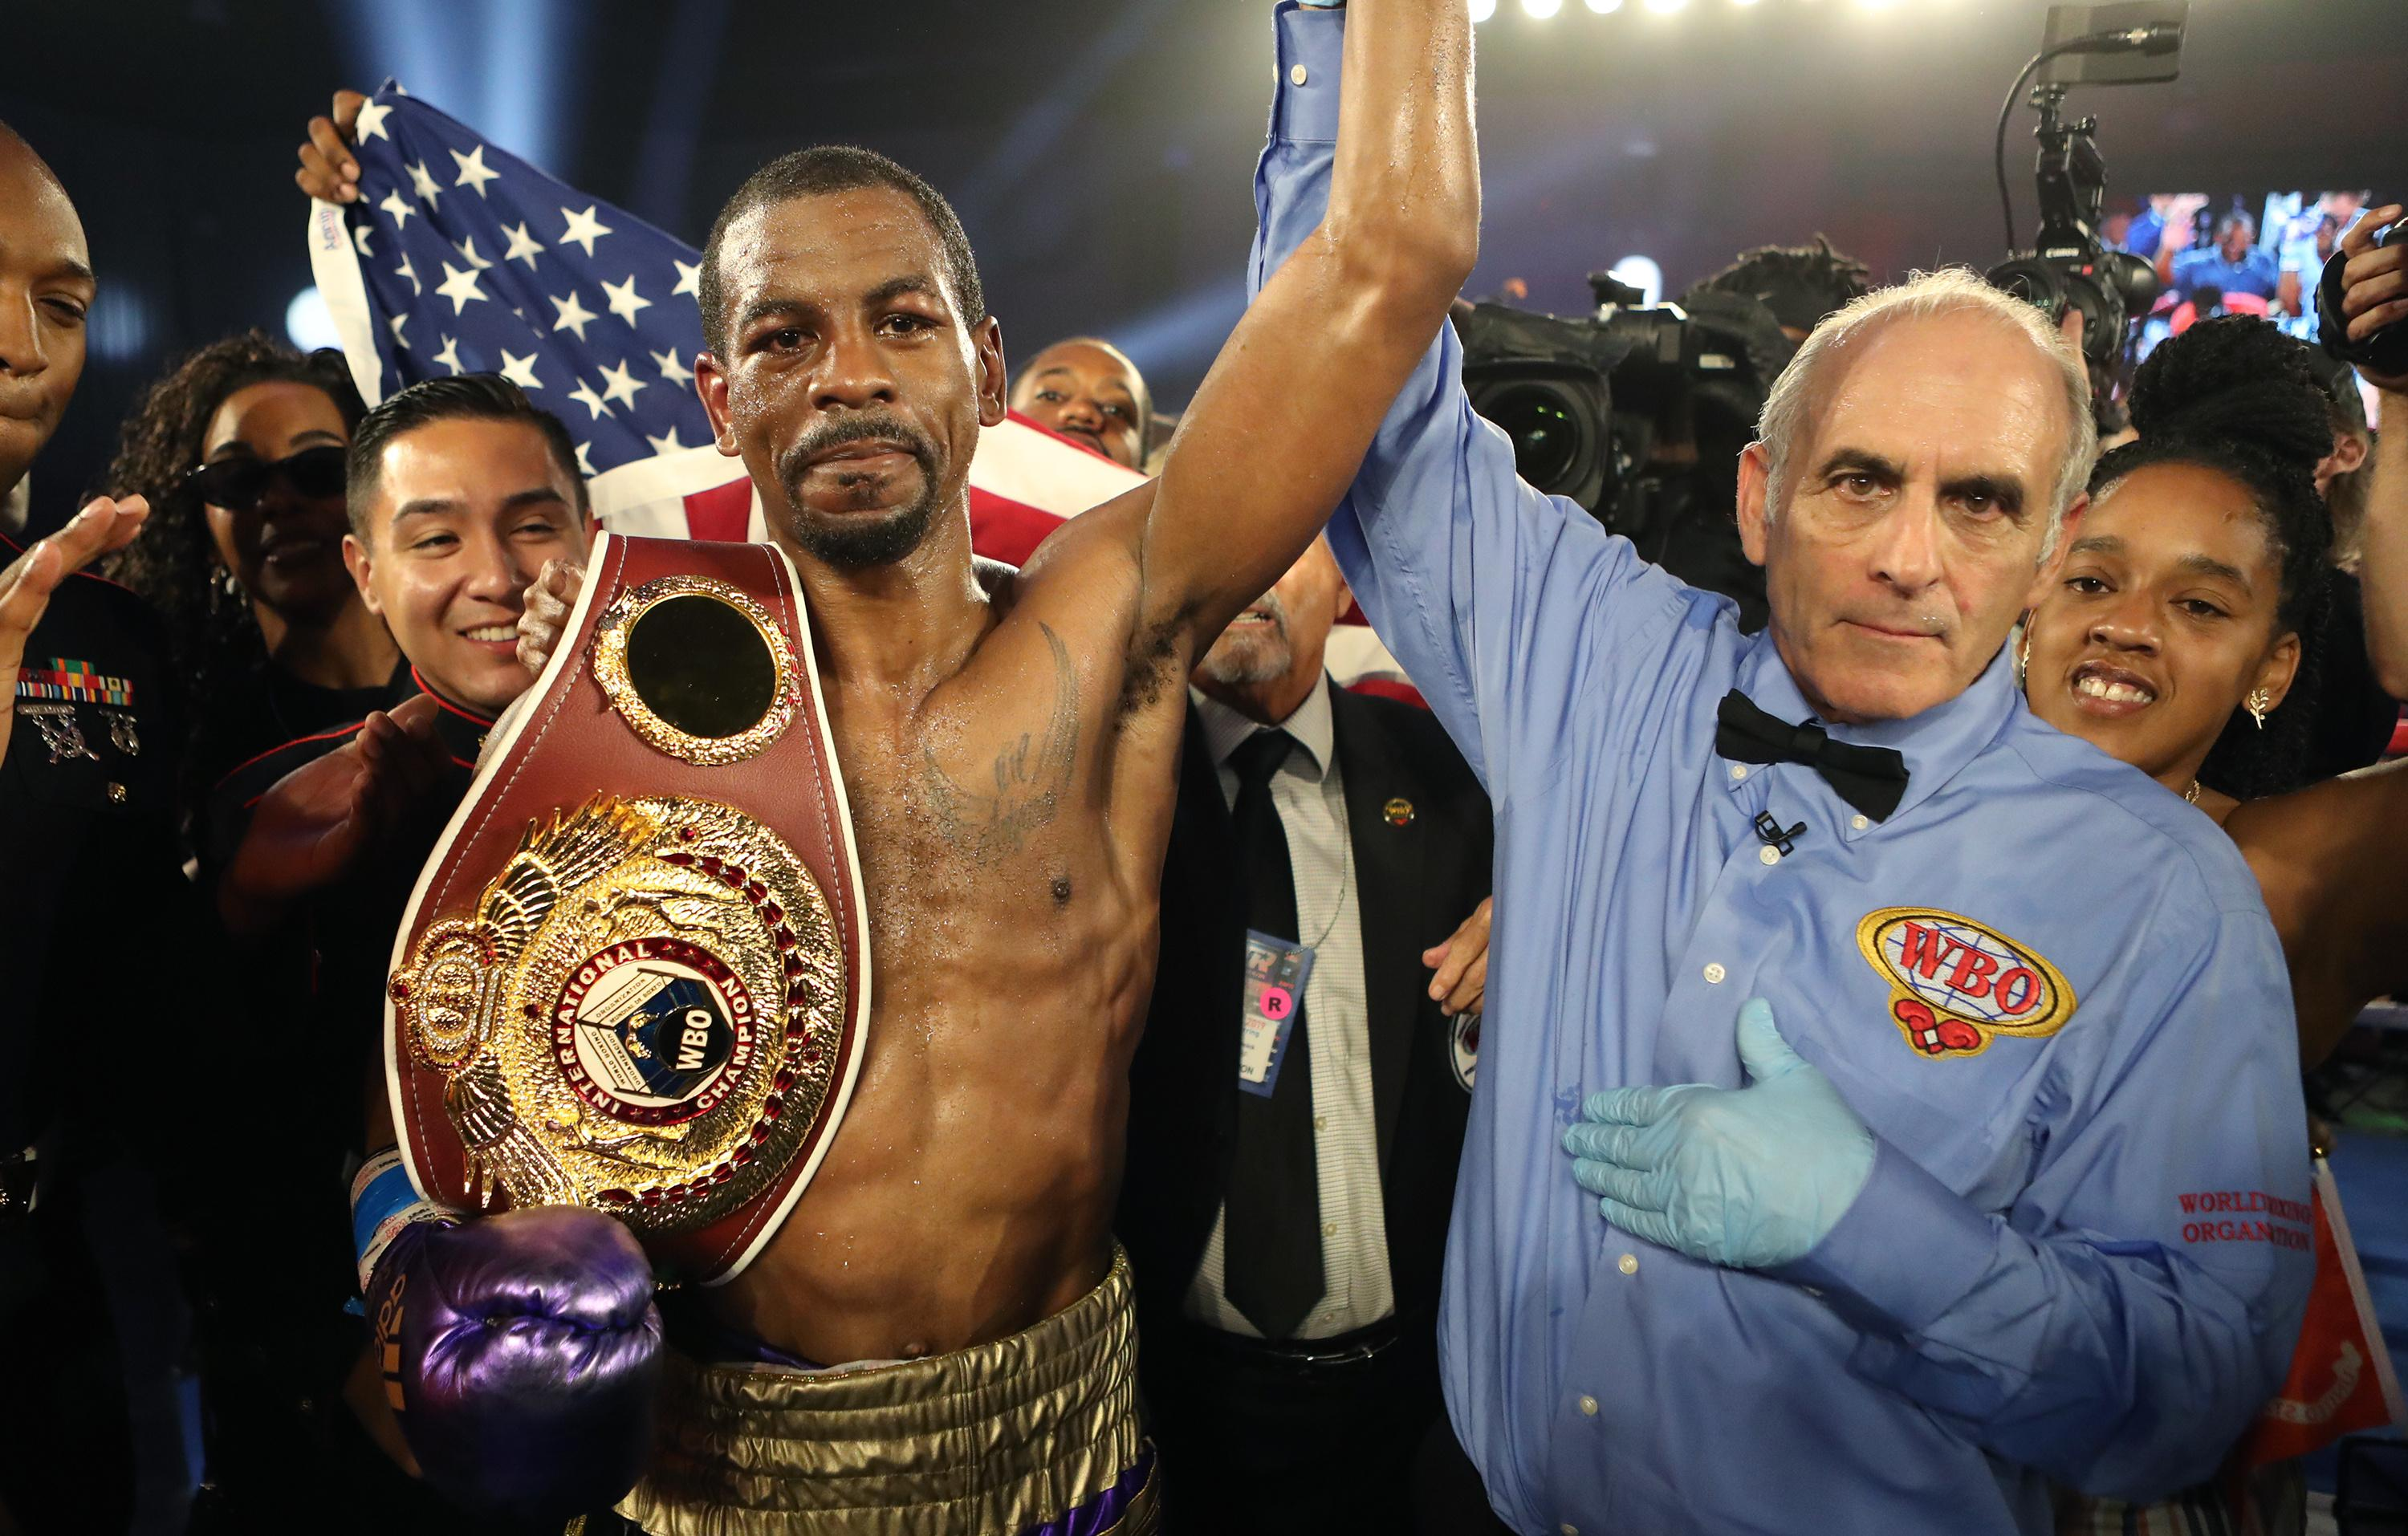 Jamel Herring: from the Iraq War to boxing glory ... and West Side Story